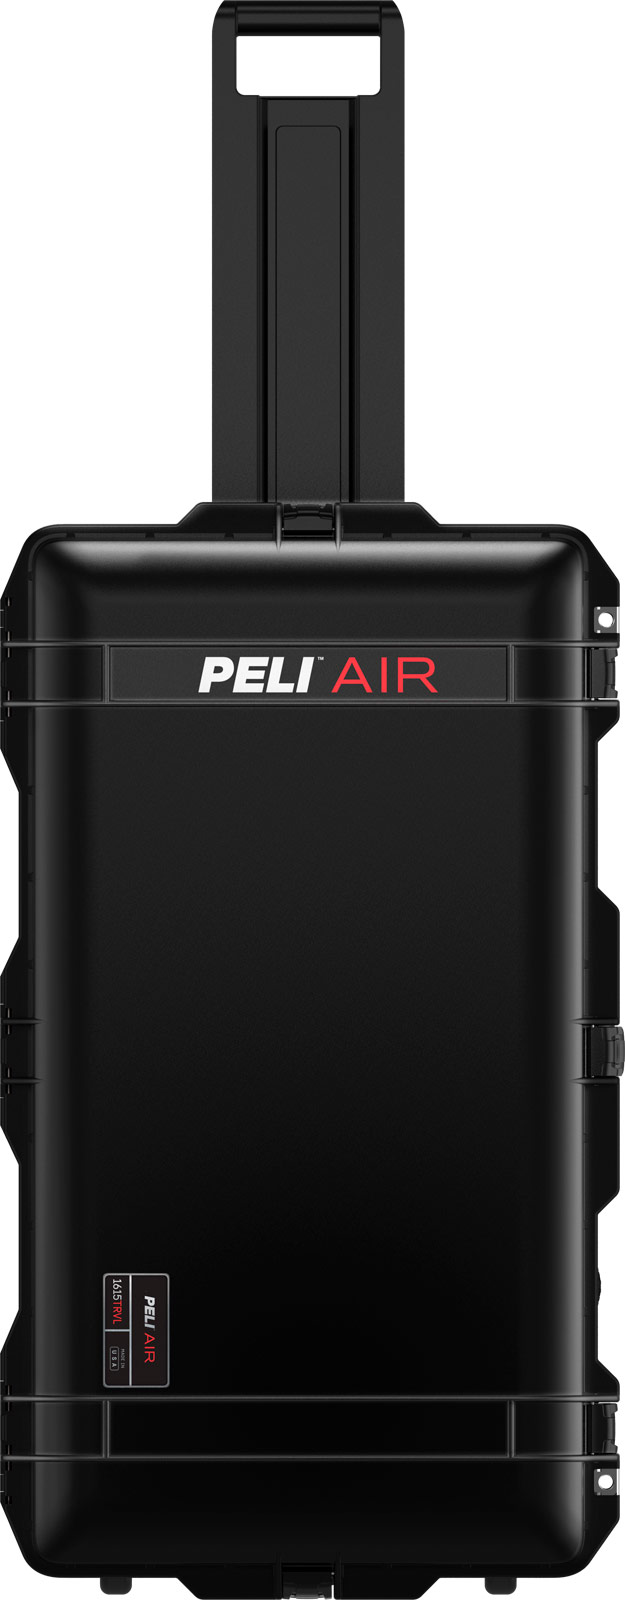 peli 1615 trsa airline check in case